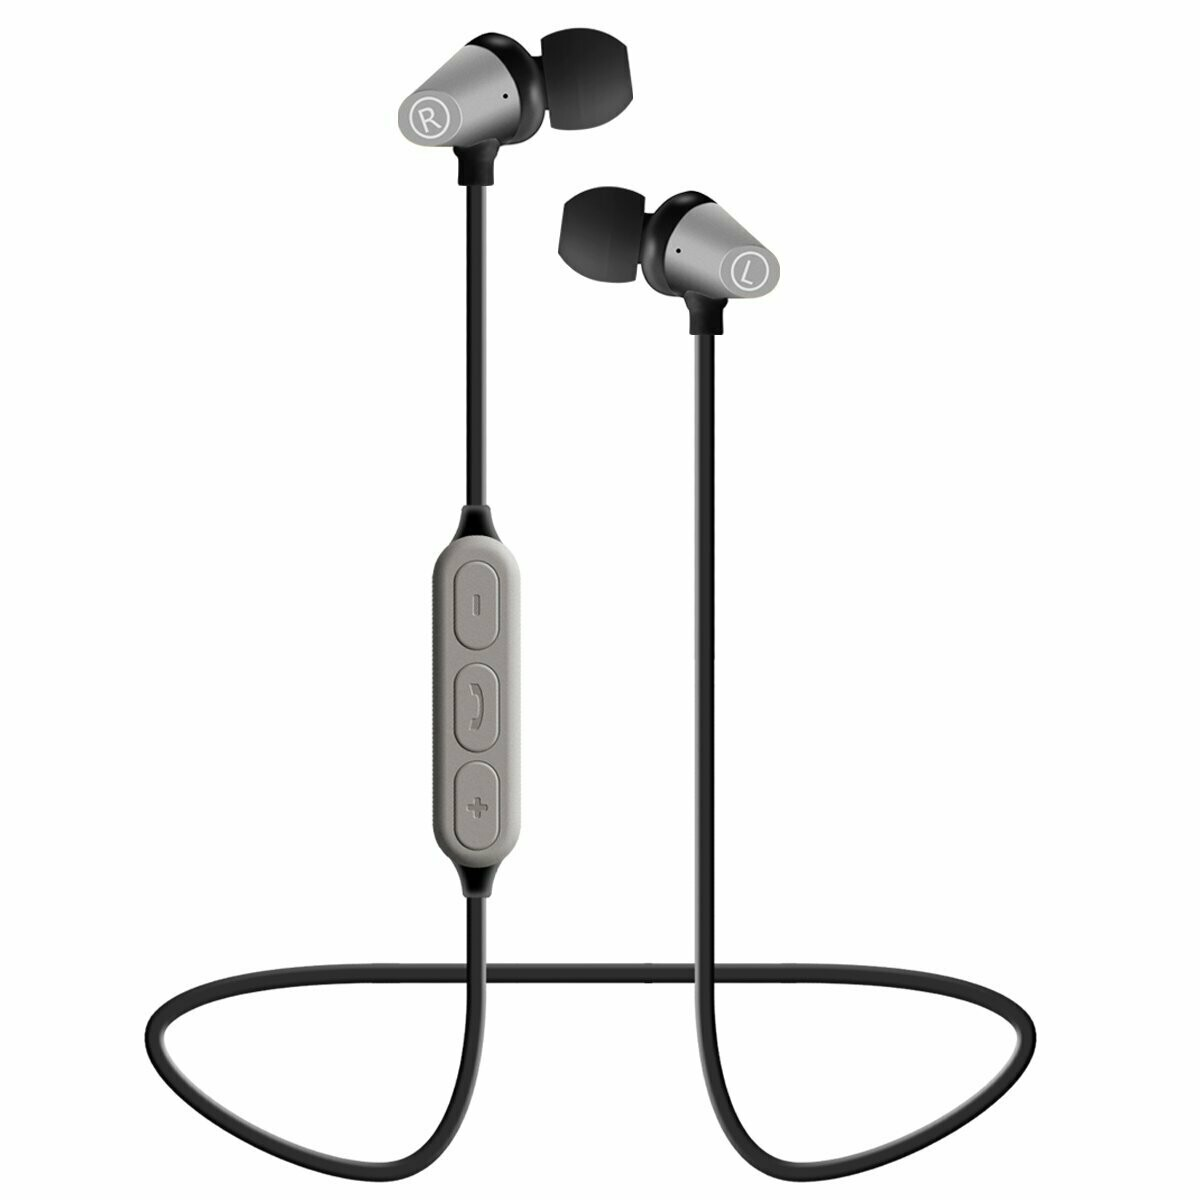 Bluetooth Headphones, Wallfire Best Wireless Sports Earphones w/Mic 4.1 Stereo Sweatproof Earbuds for Gym Running Playtime, Magnetic Bluetooth Headset